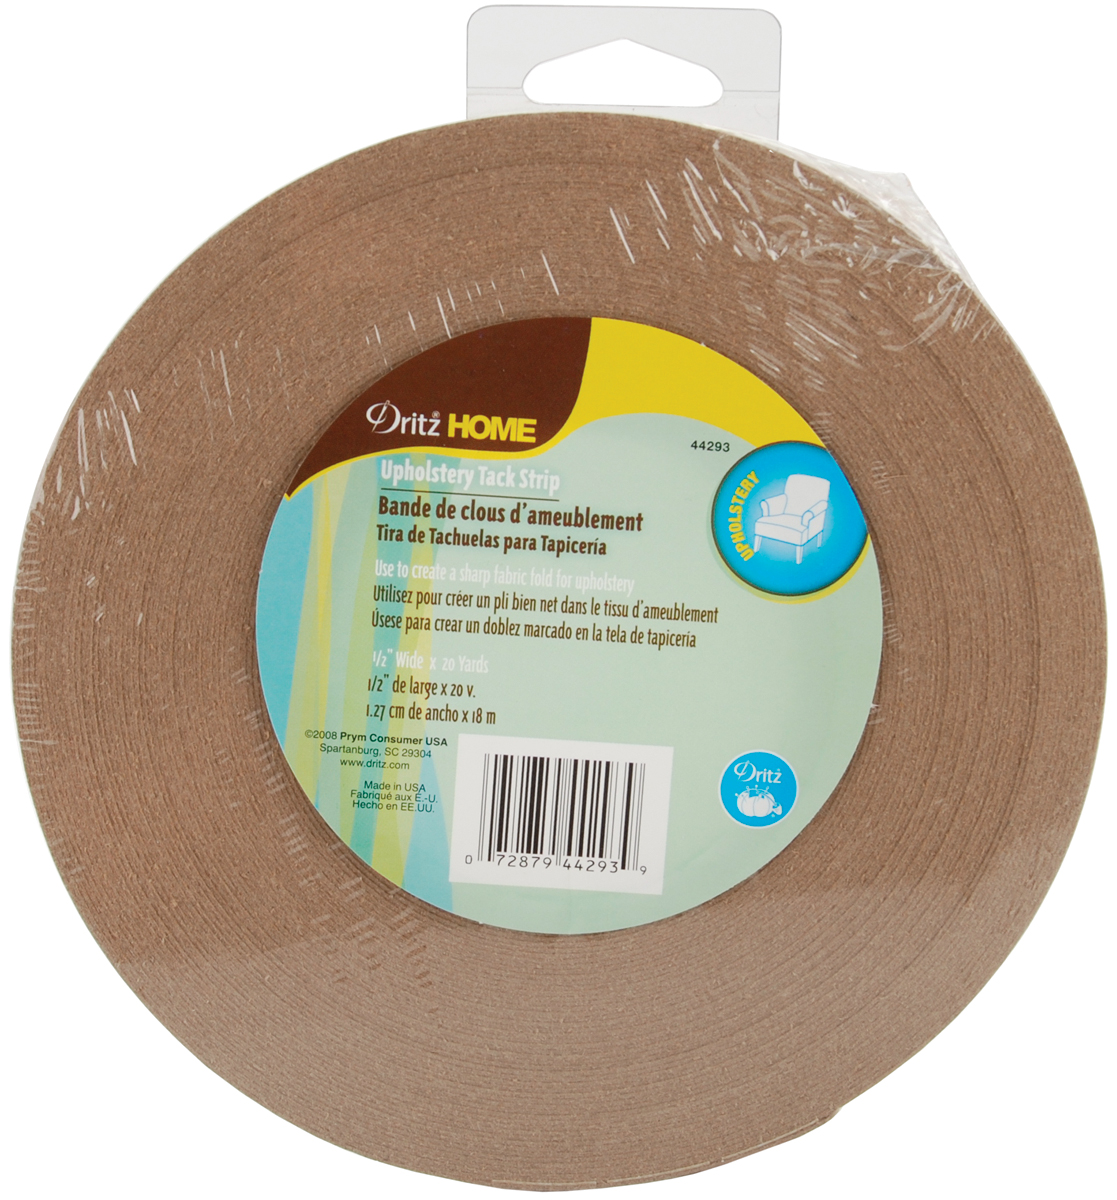 Dritz Upholstery Tack Strip